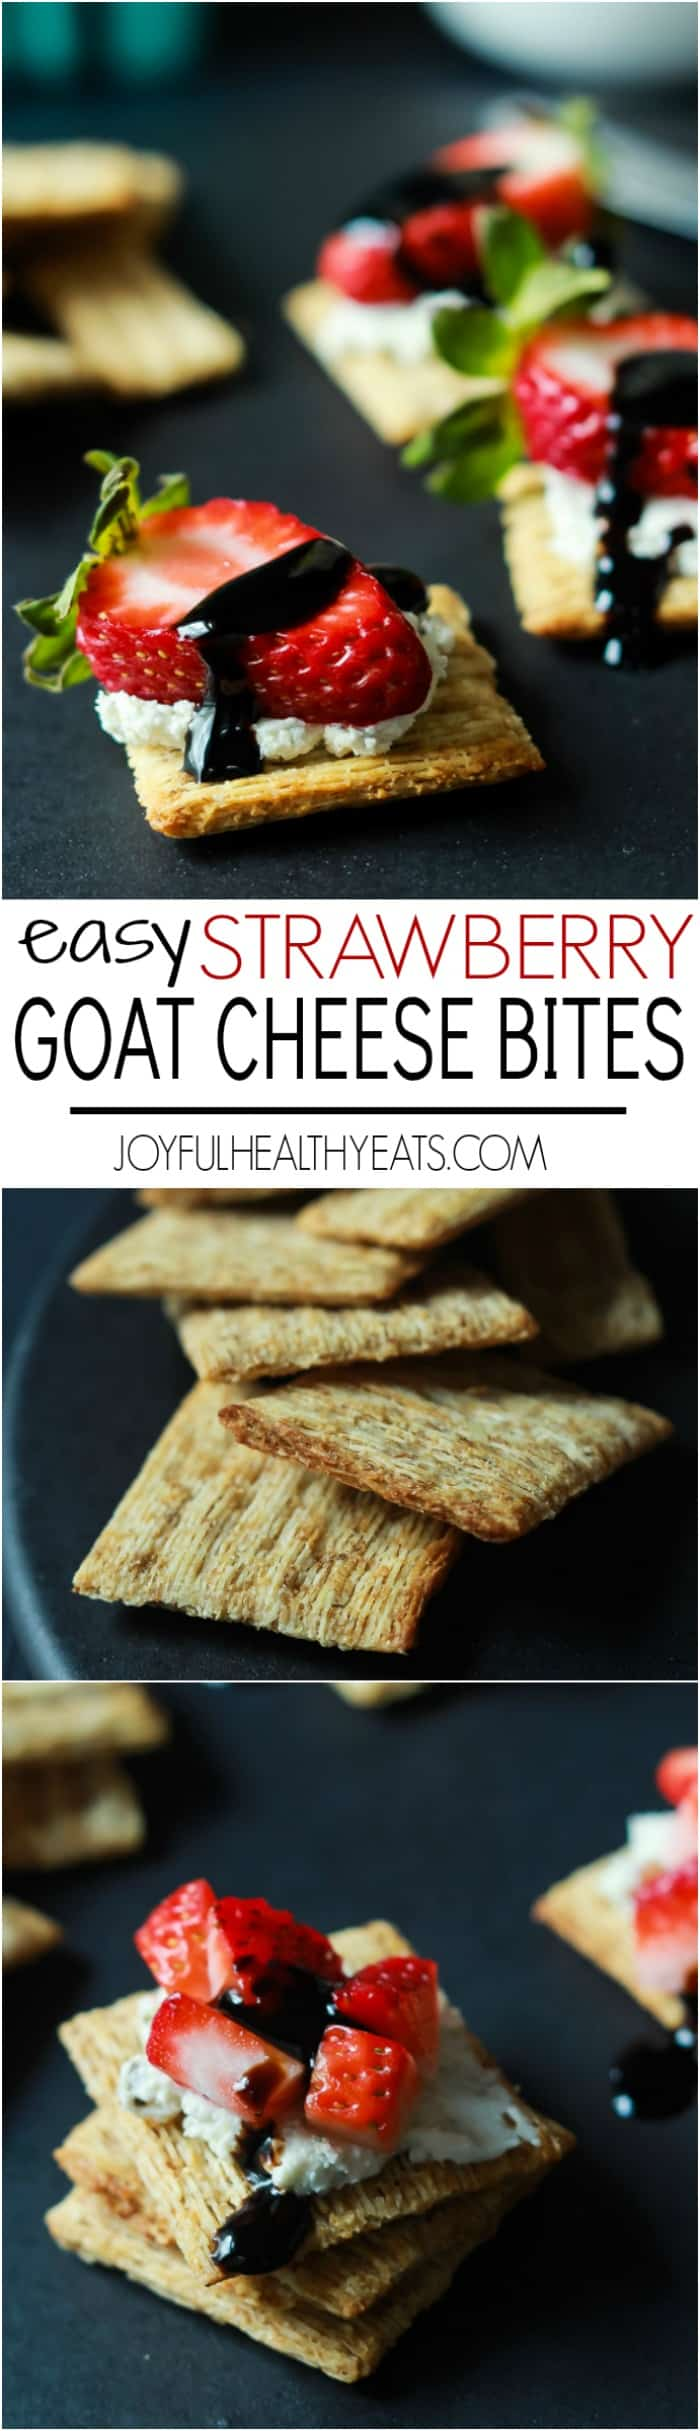 Easy Strawberry Goat Cheese Bites with Balsamic Reduction ...